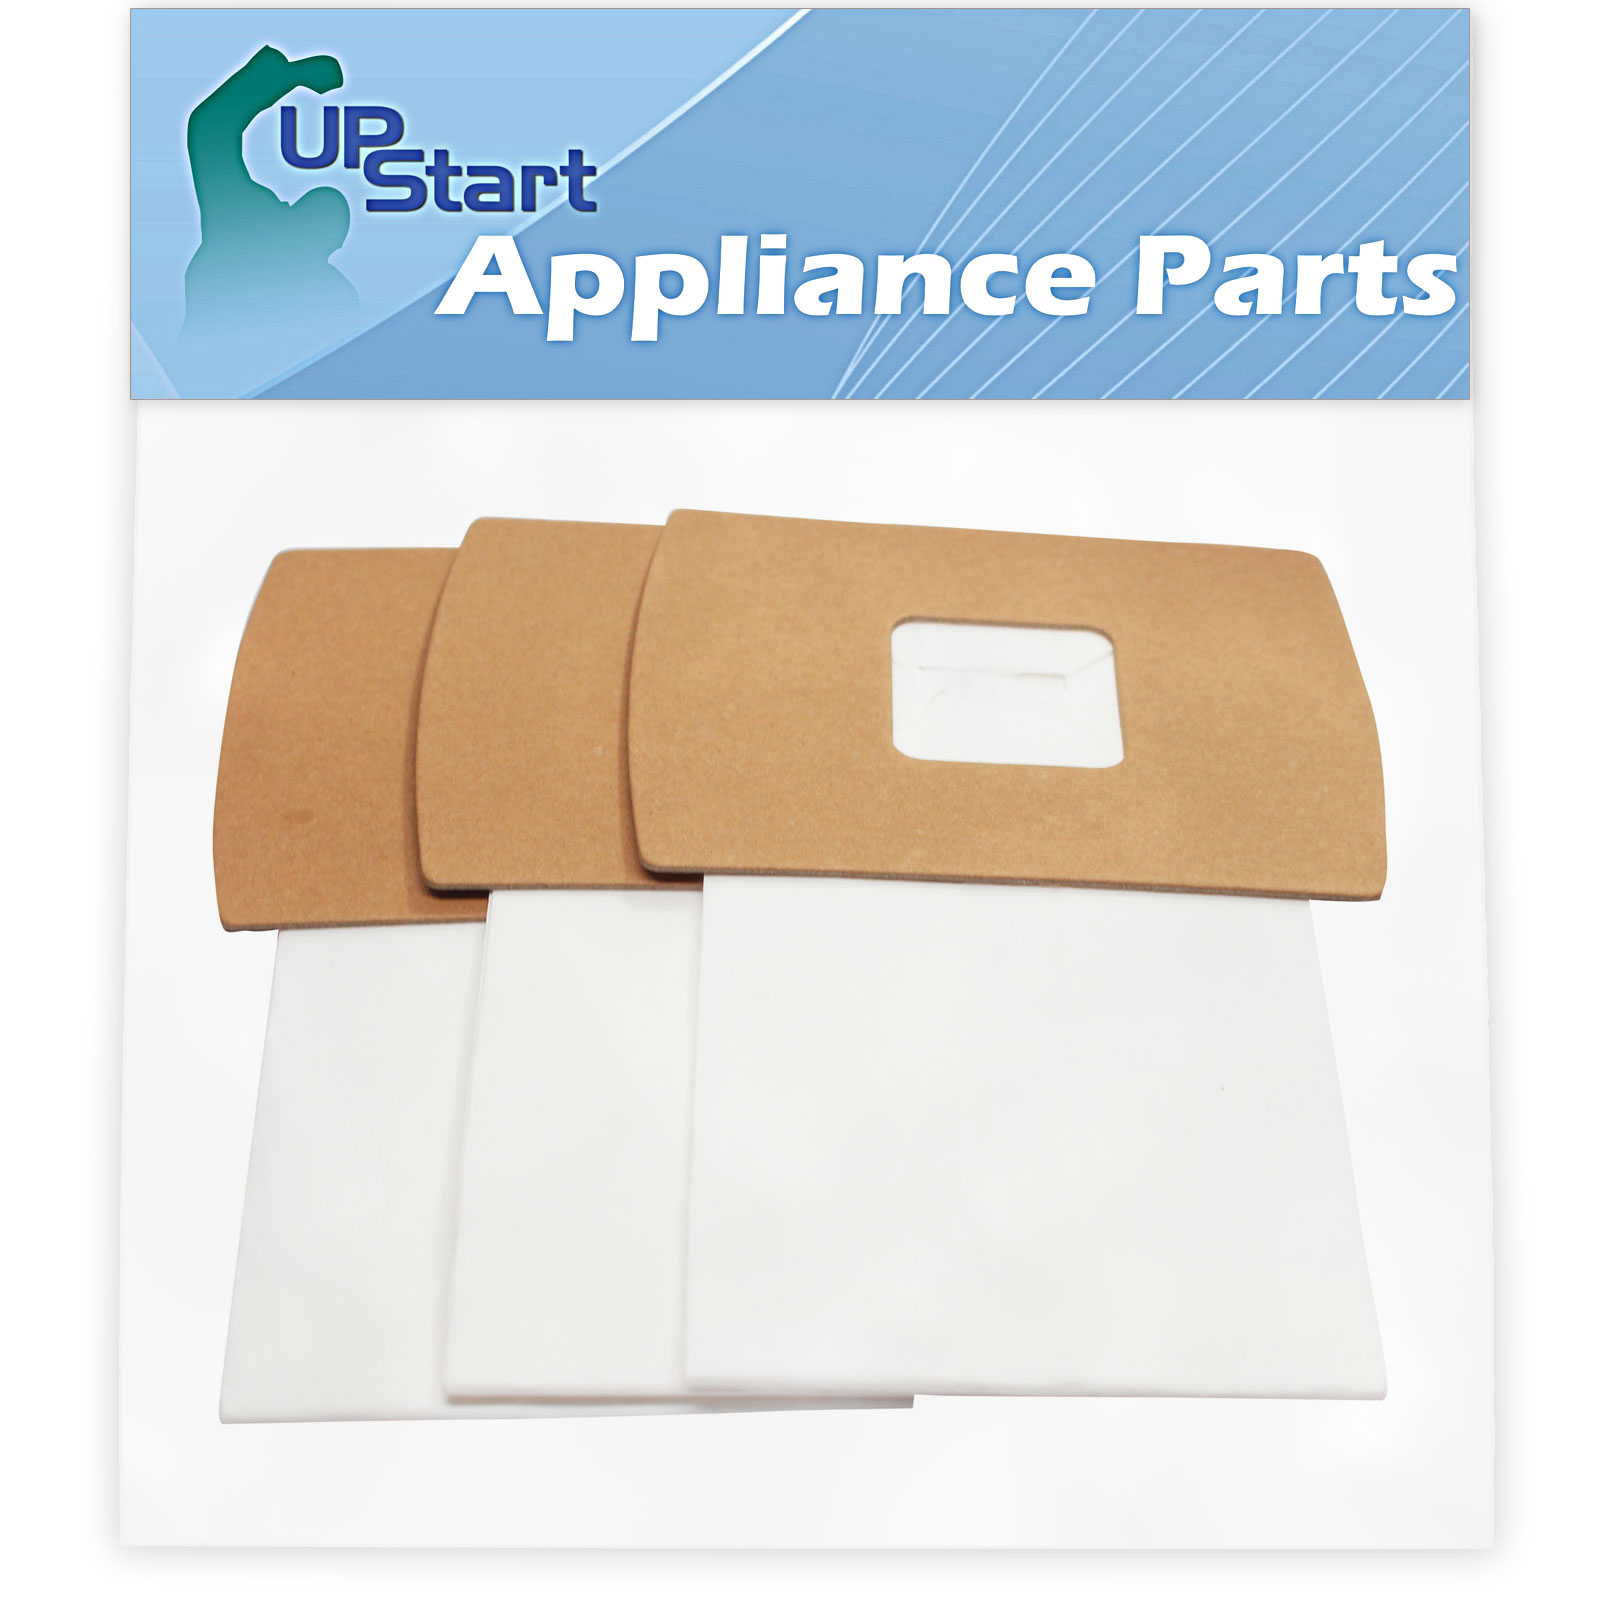 3 Replacement Type BB Buster B Vacuum Bags for Oreck - Compatible with Oreck XL2, Oreck PKBB12DW, Oreck BB900-DGR, Oreck XL PRO 5, Oreck Buster B, Oreck BB280D, Oreck BB870AW, Oreck XL 3, Oreck XL 5